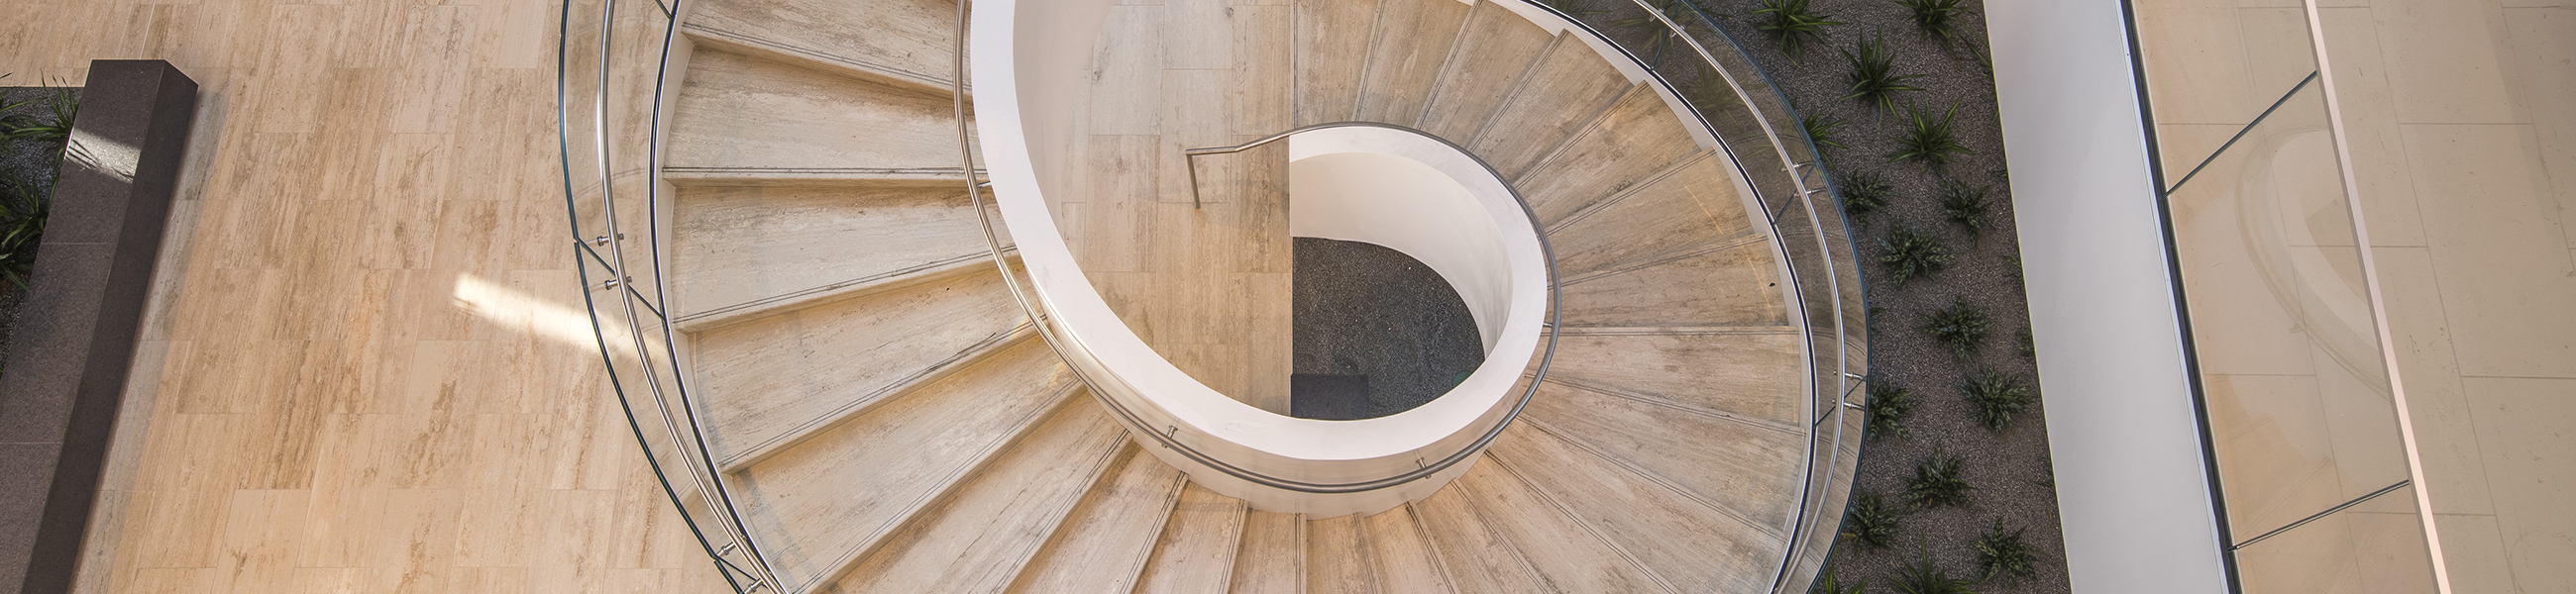 winding spiral staircase